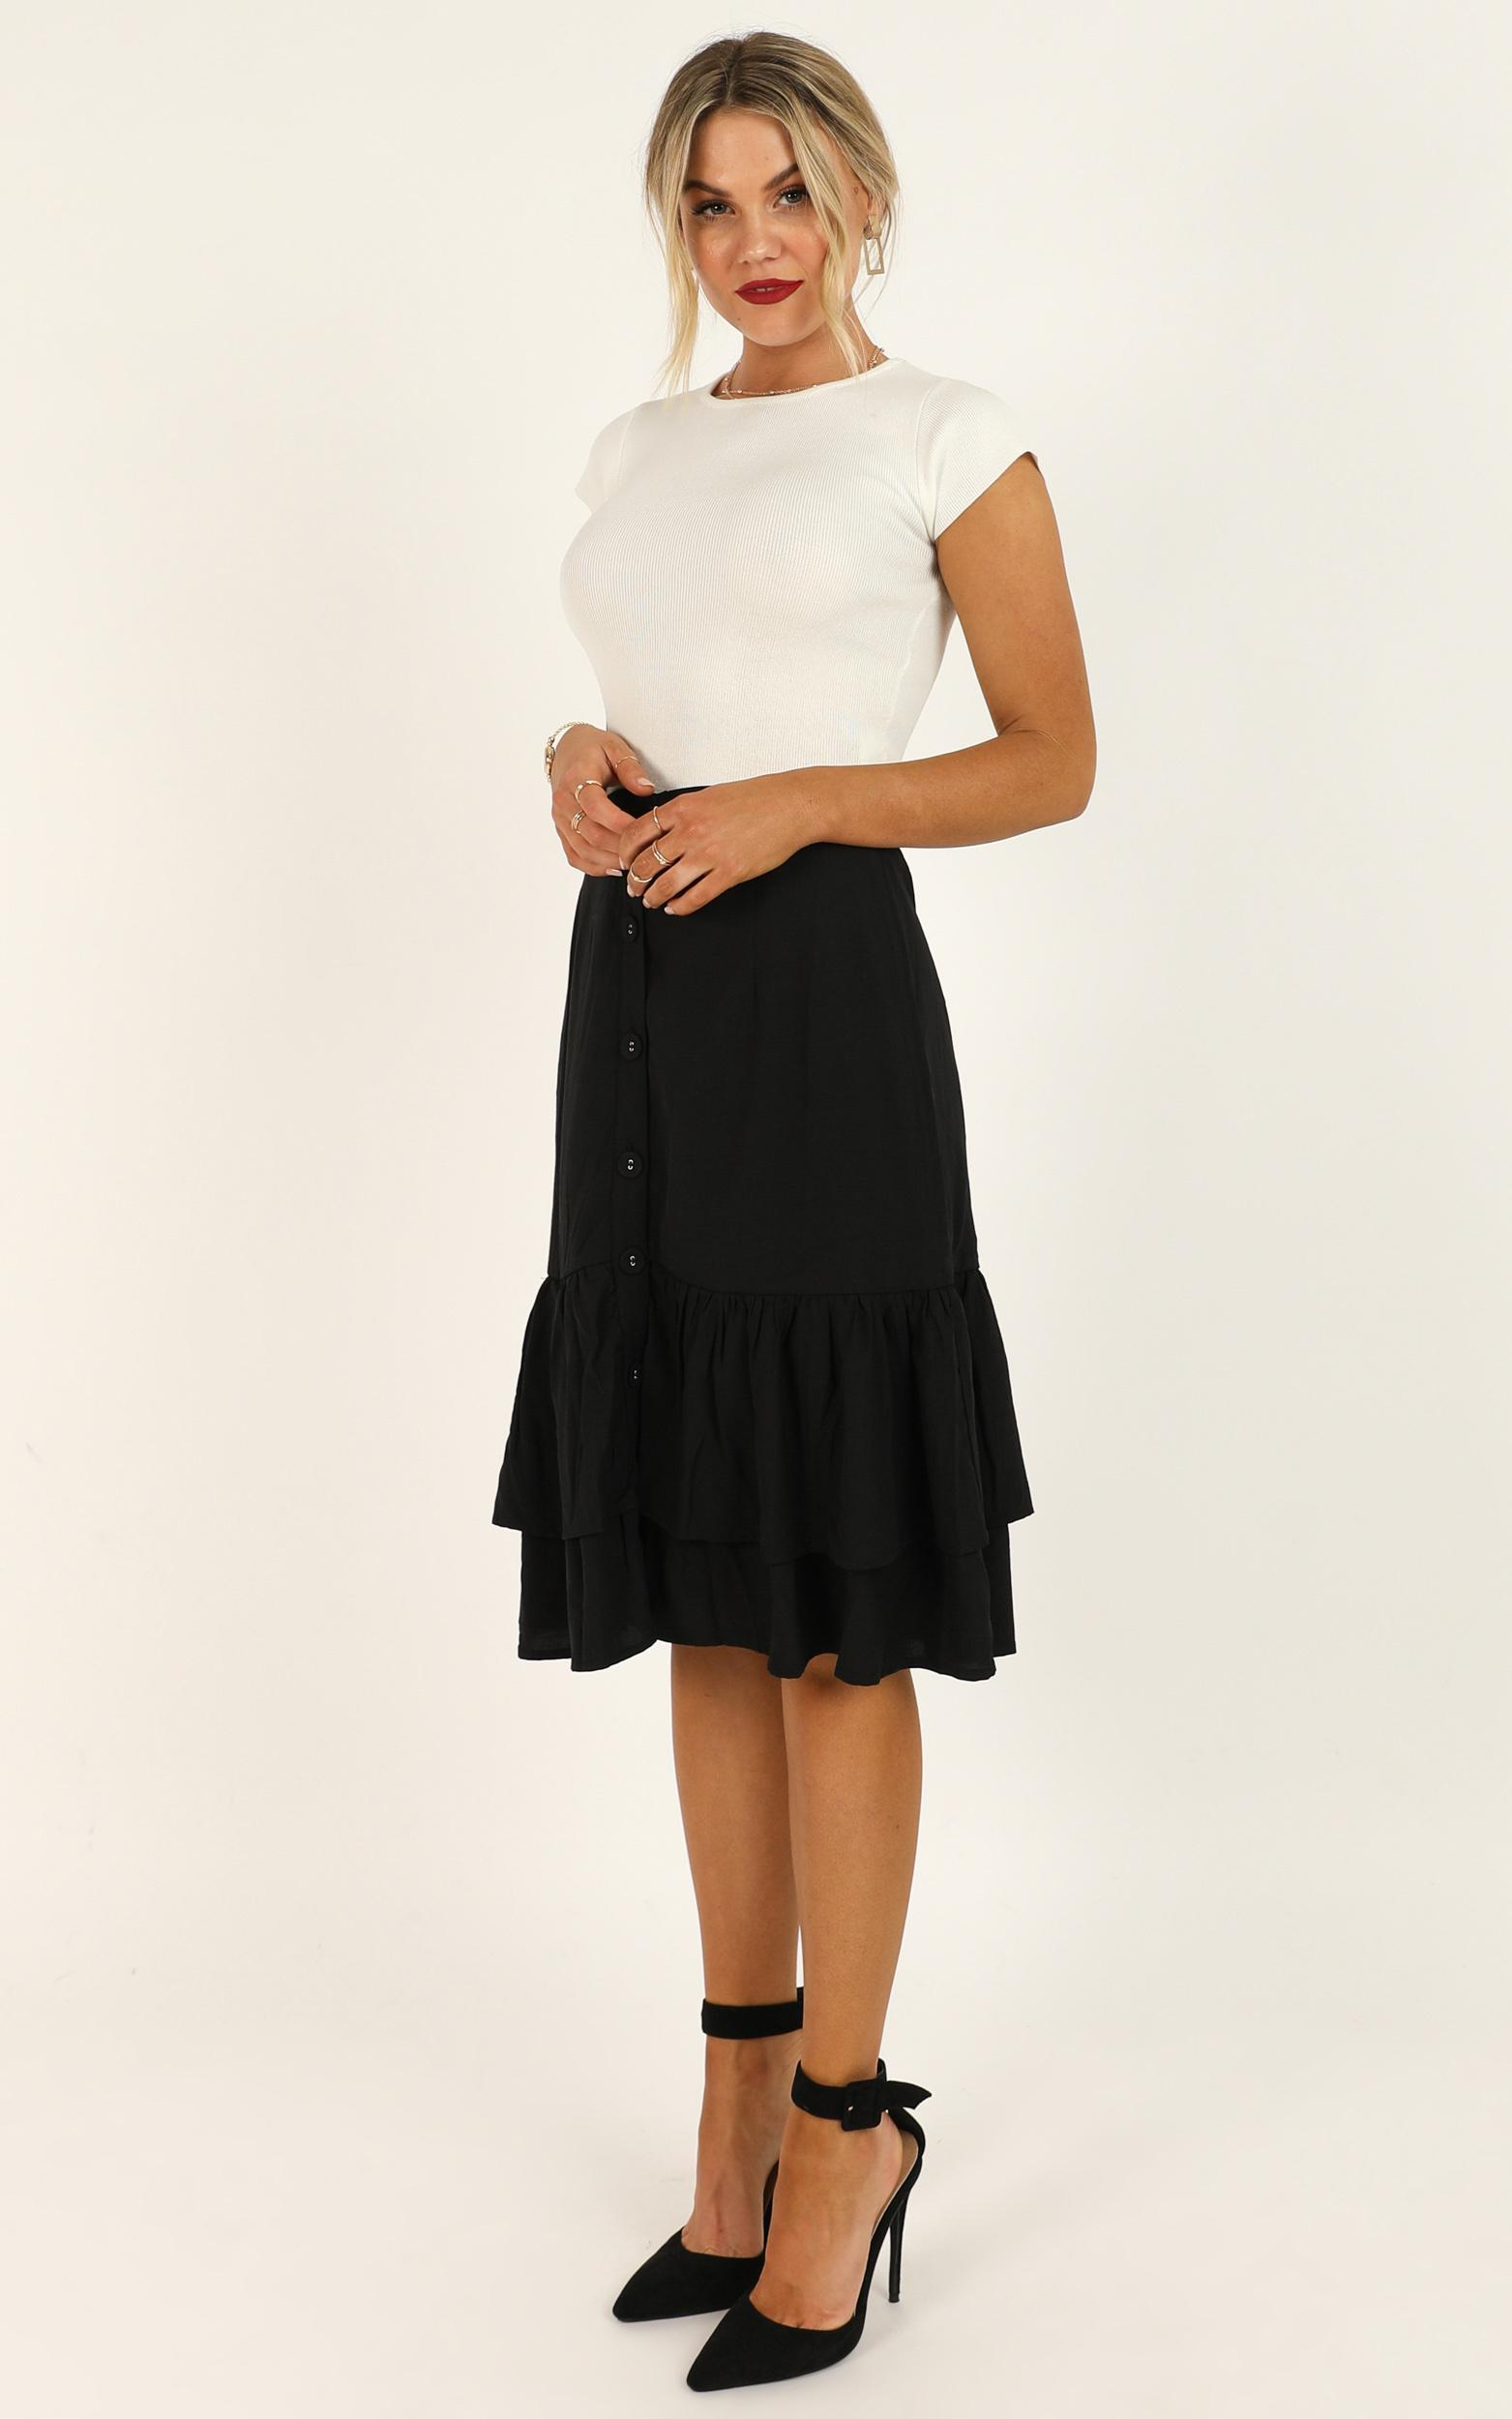 Fierce Competition Skirt in black - 20 (XXXXL), Black, hi-res image number null